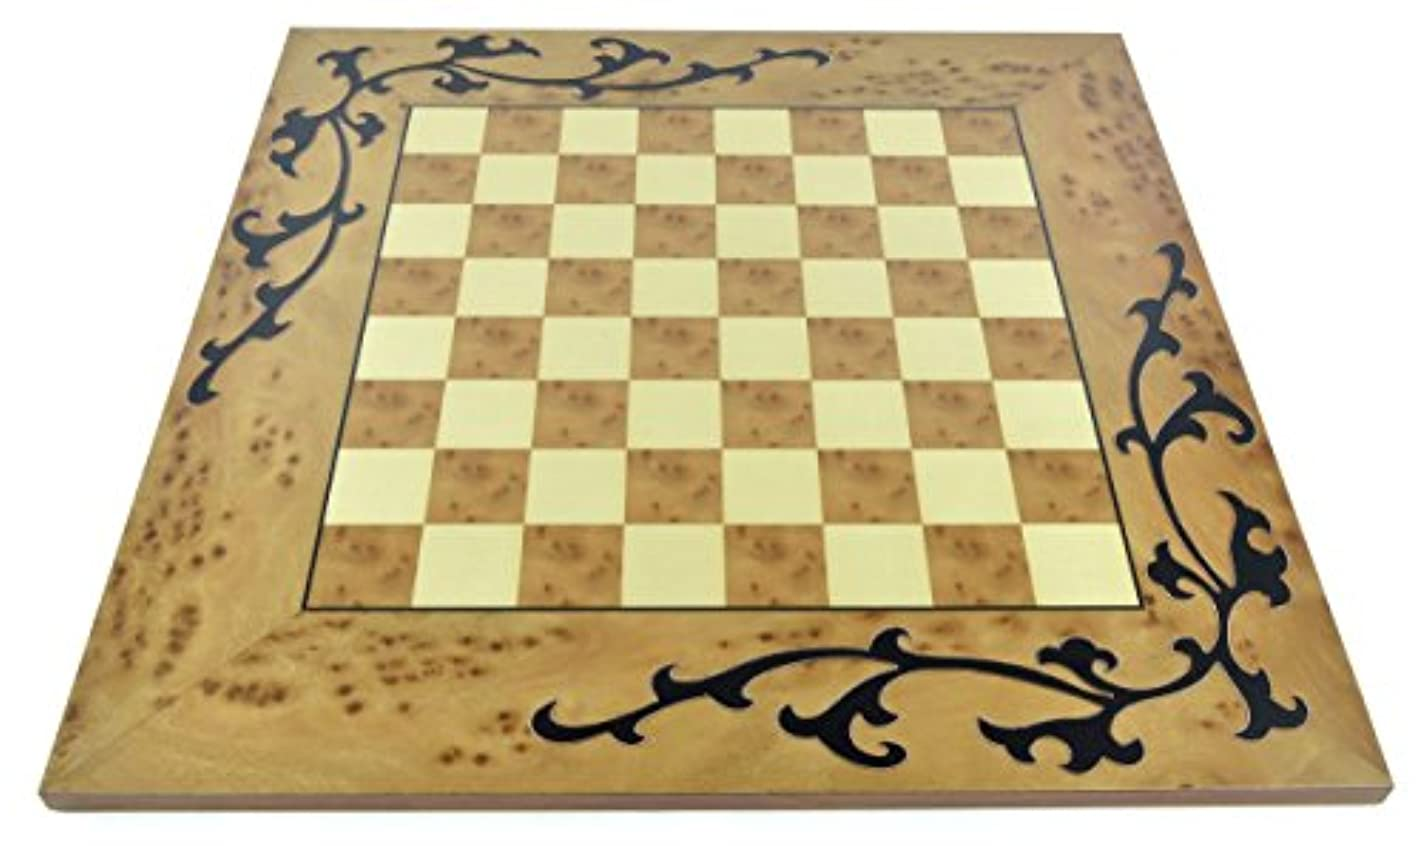 Natural Color Wood Chess Board with Black Floral Accents and 1.75